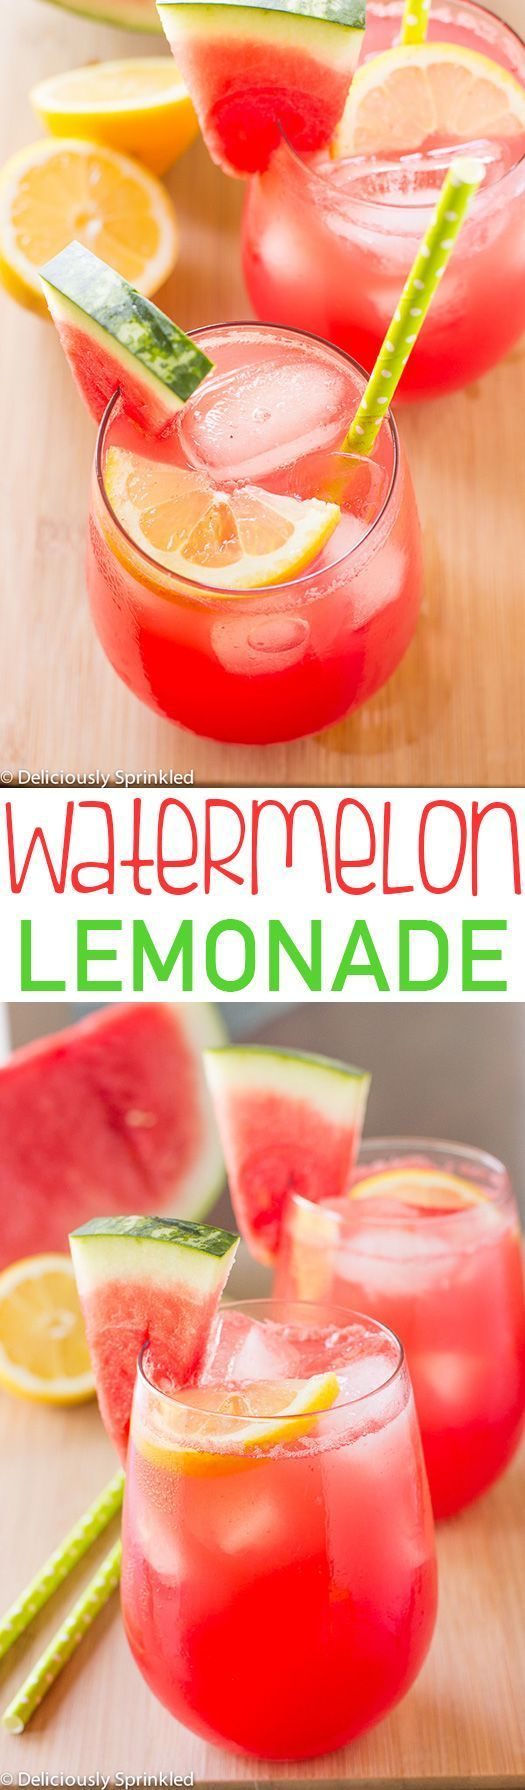 This Watermelon Lemonade is super easy to make and is the perfect summer drink!